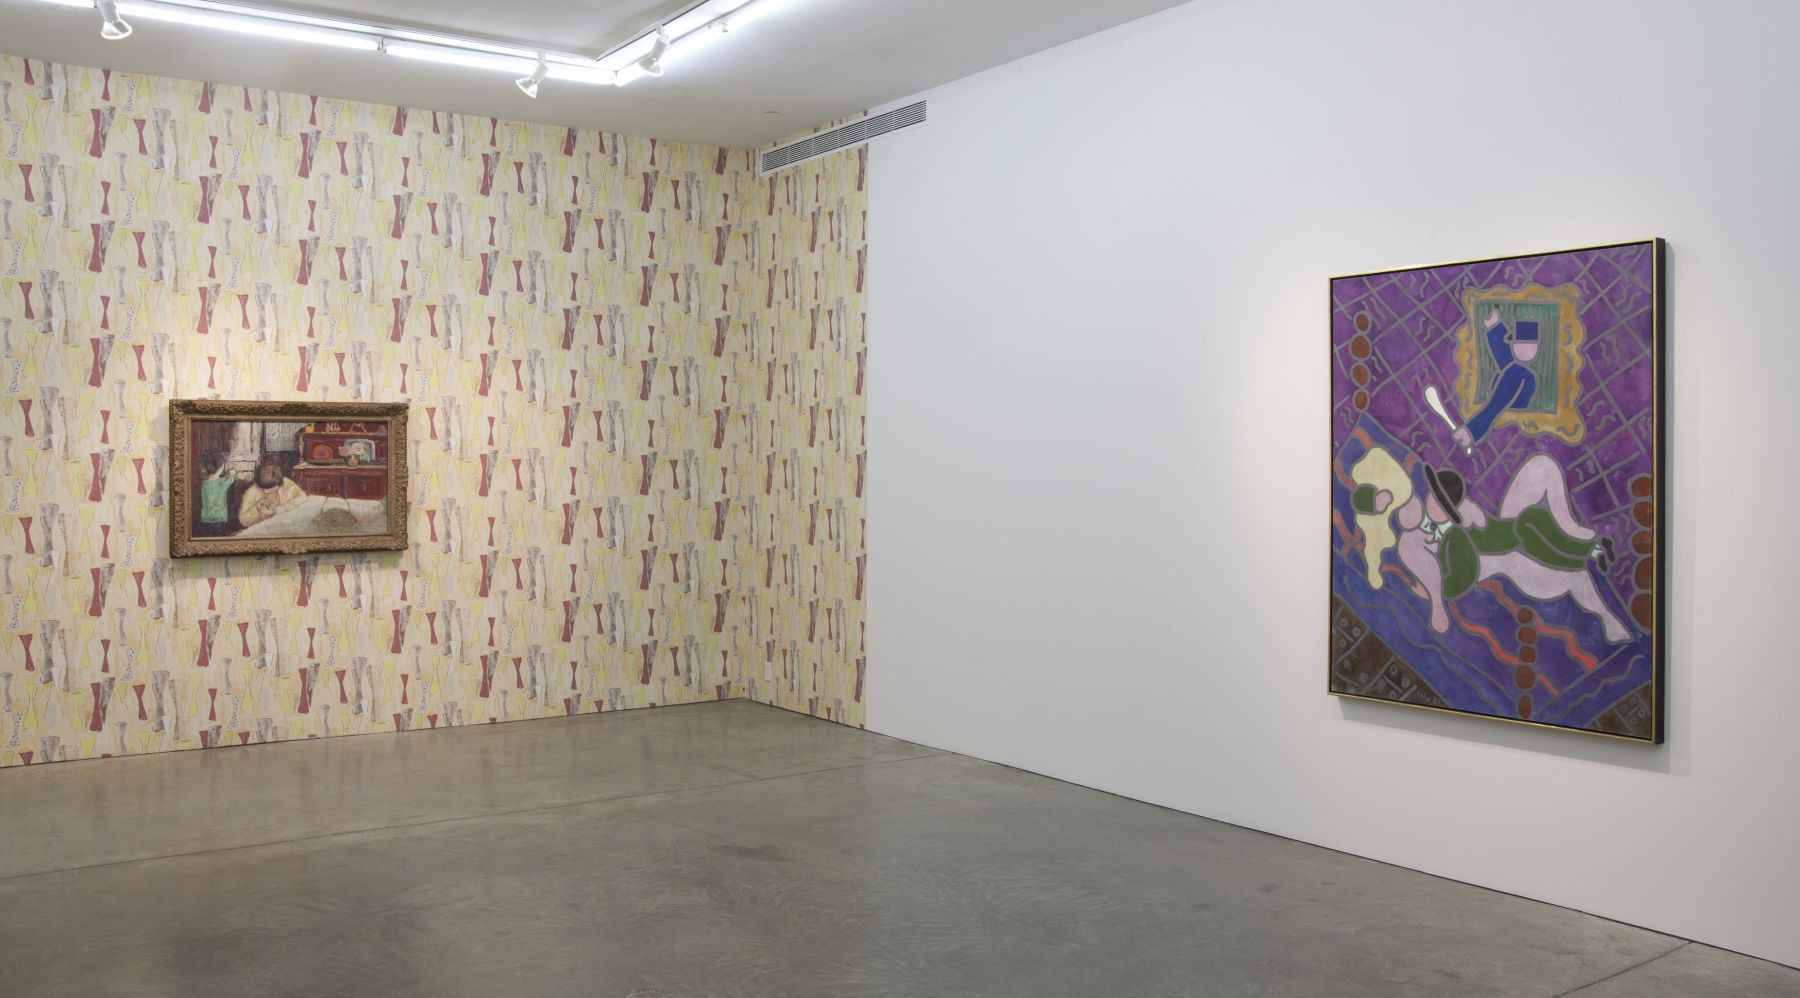 Interiors, Andrew Kreps Gallery, New YorkJanuary 14 - February 11, 2012